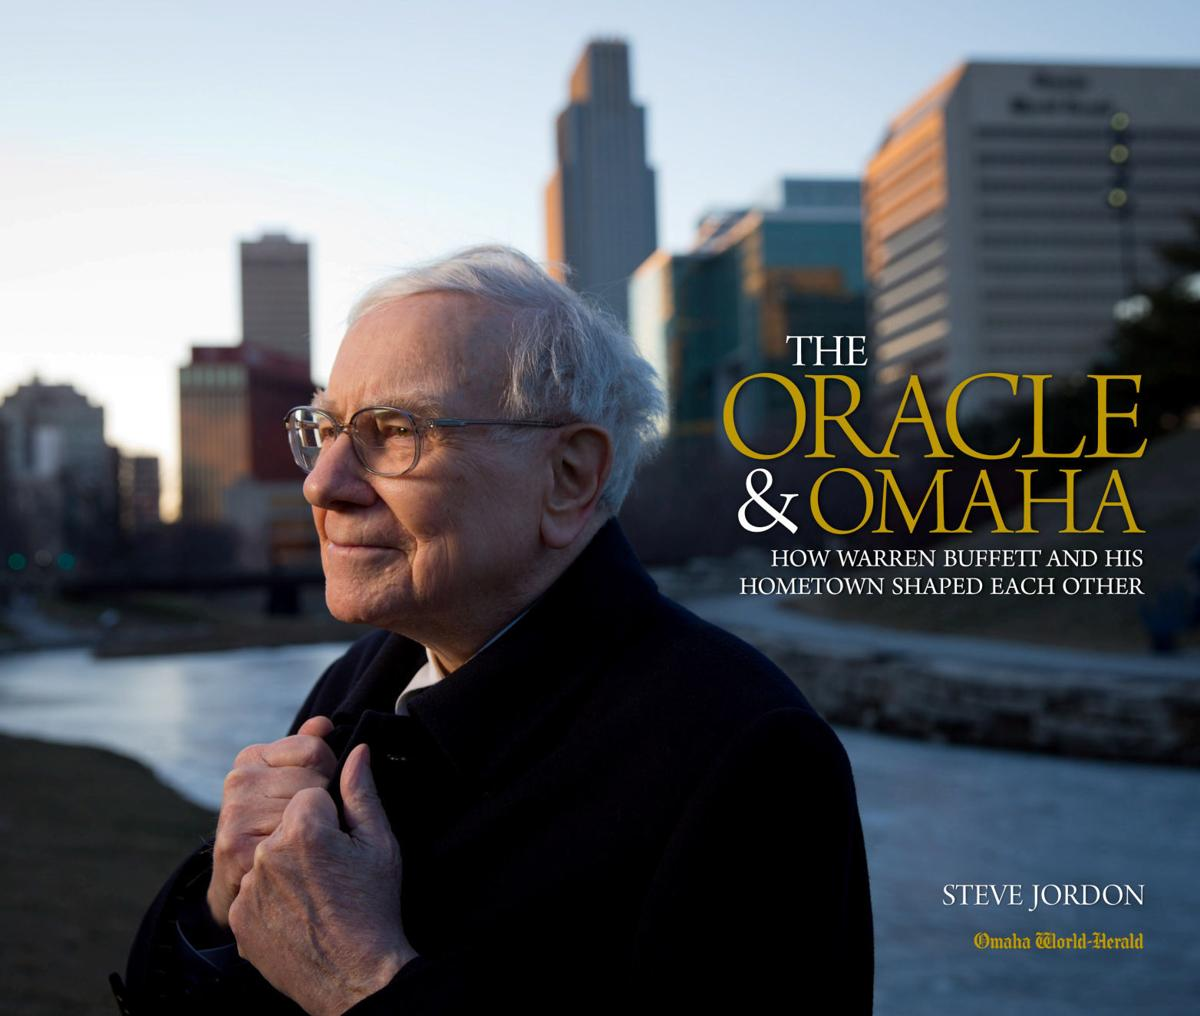 The Oracle & Omaha book cover